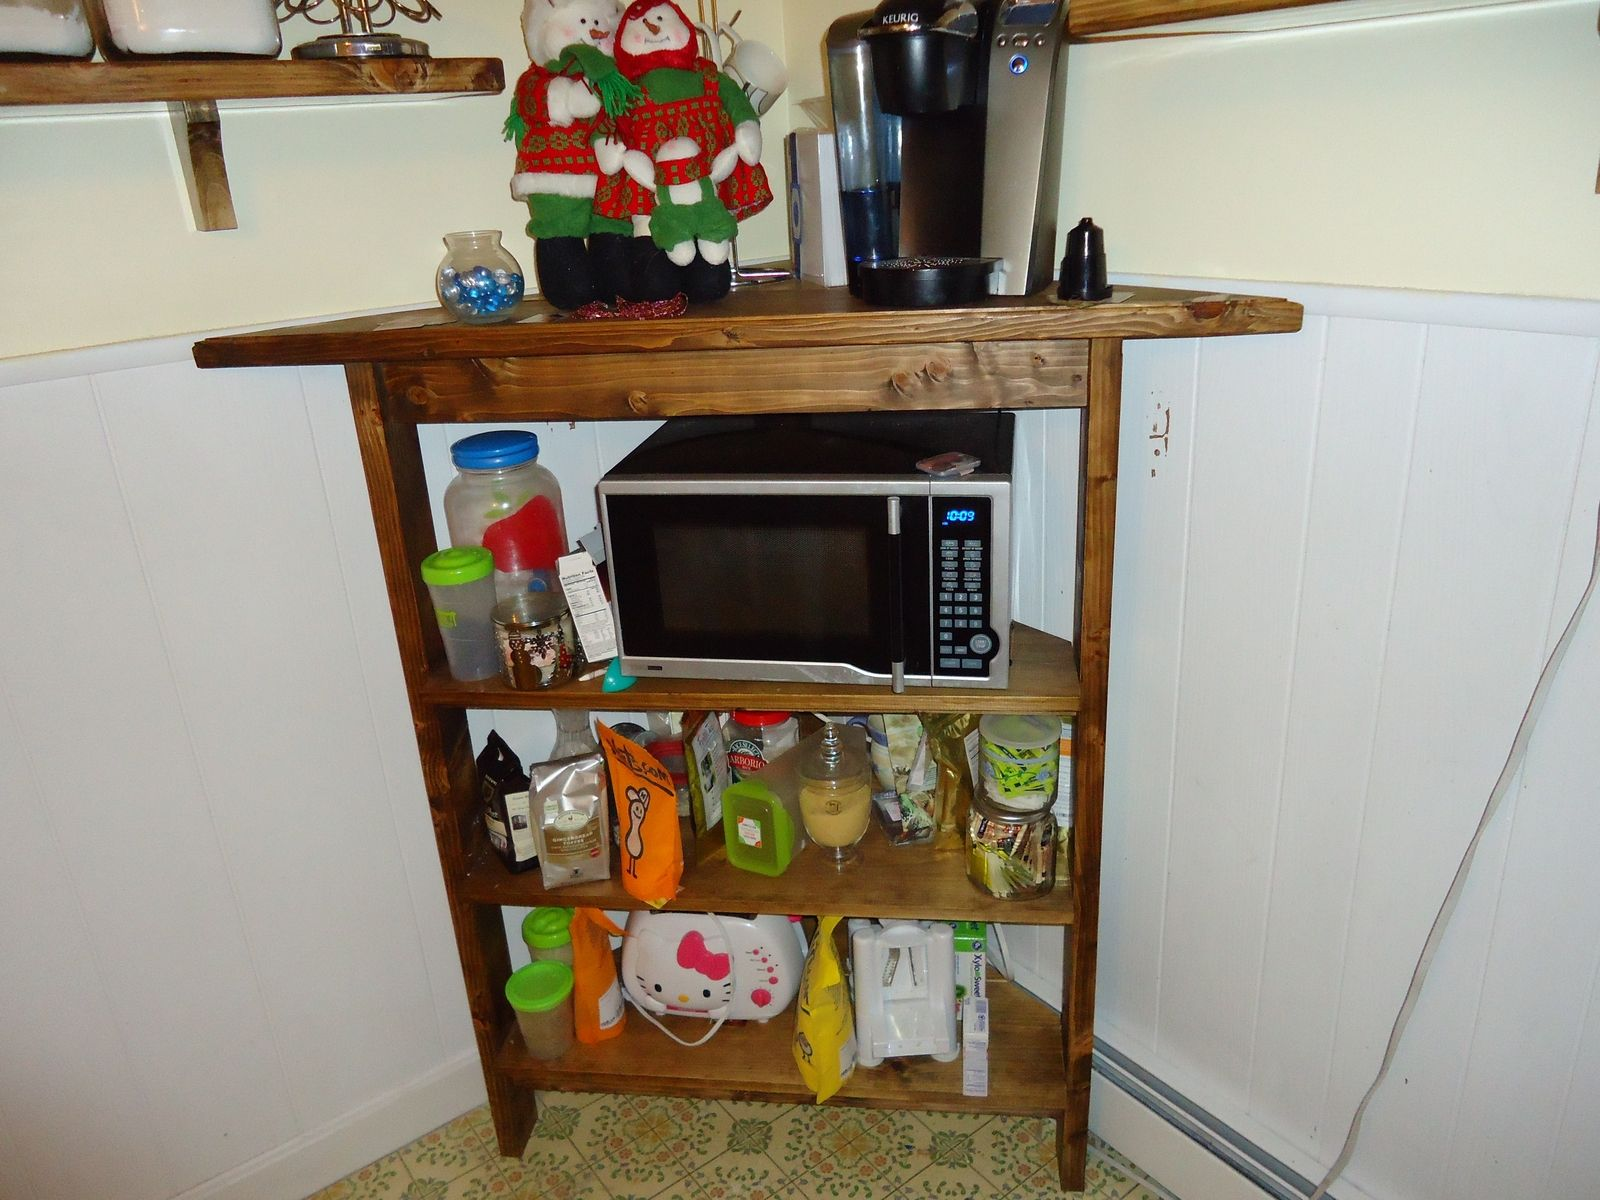 custom made rustic kitchen corner shelf and microwave stand - Kitchen Corner Shelf